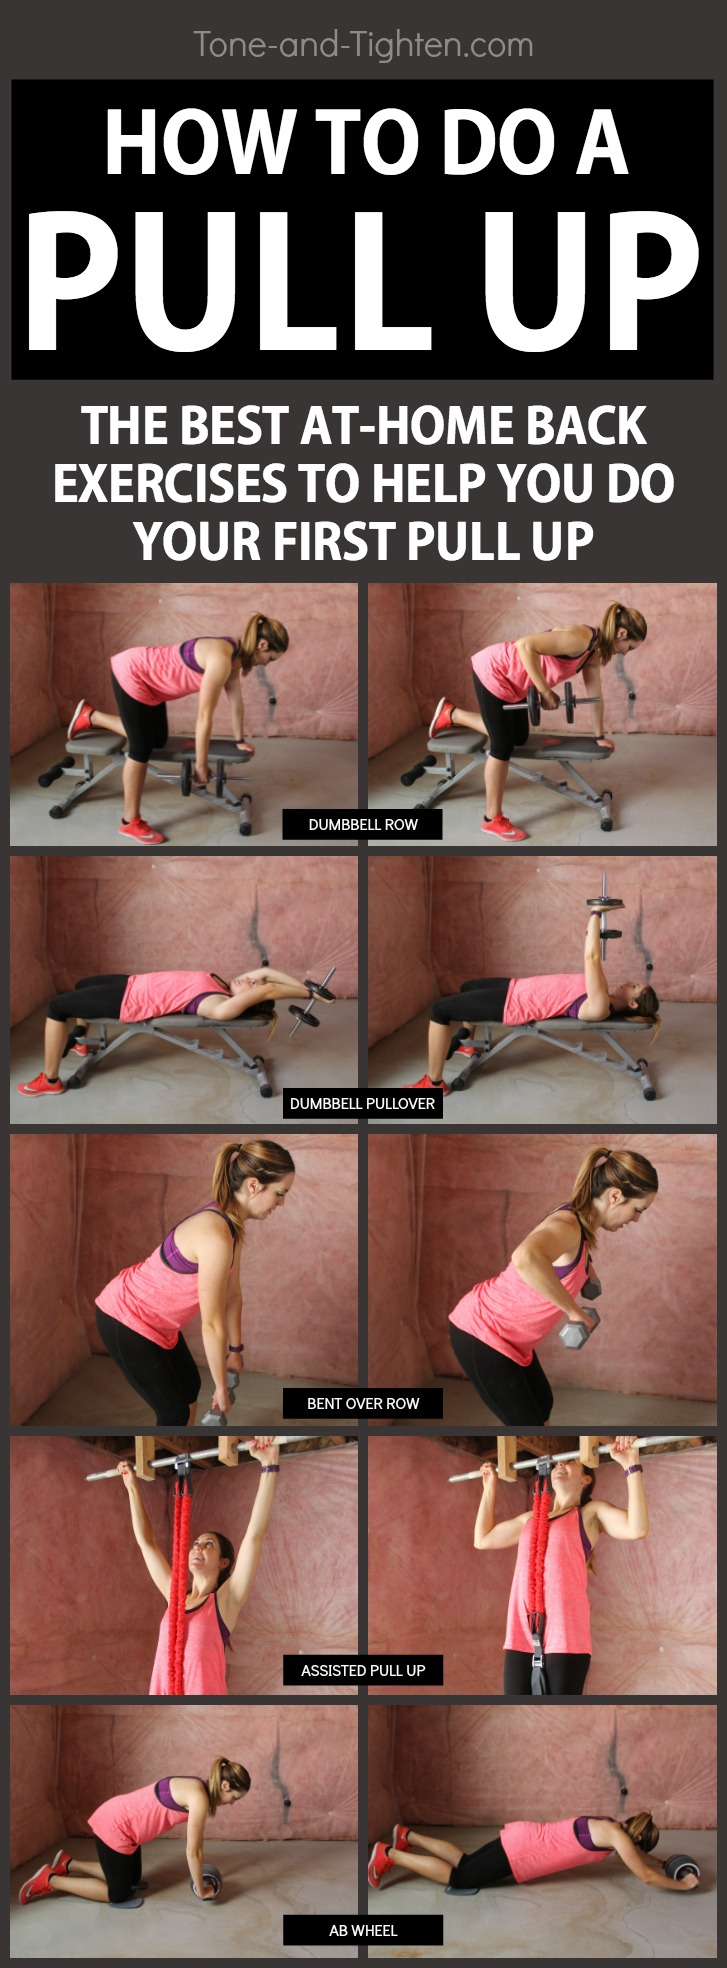 how-to-do-a-pull-up-best-exercises-at-home